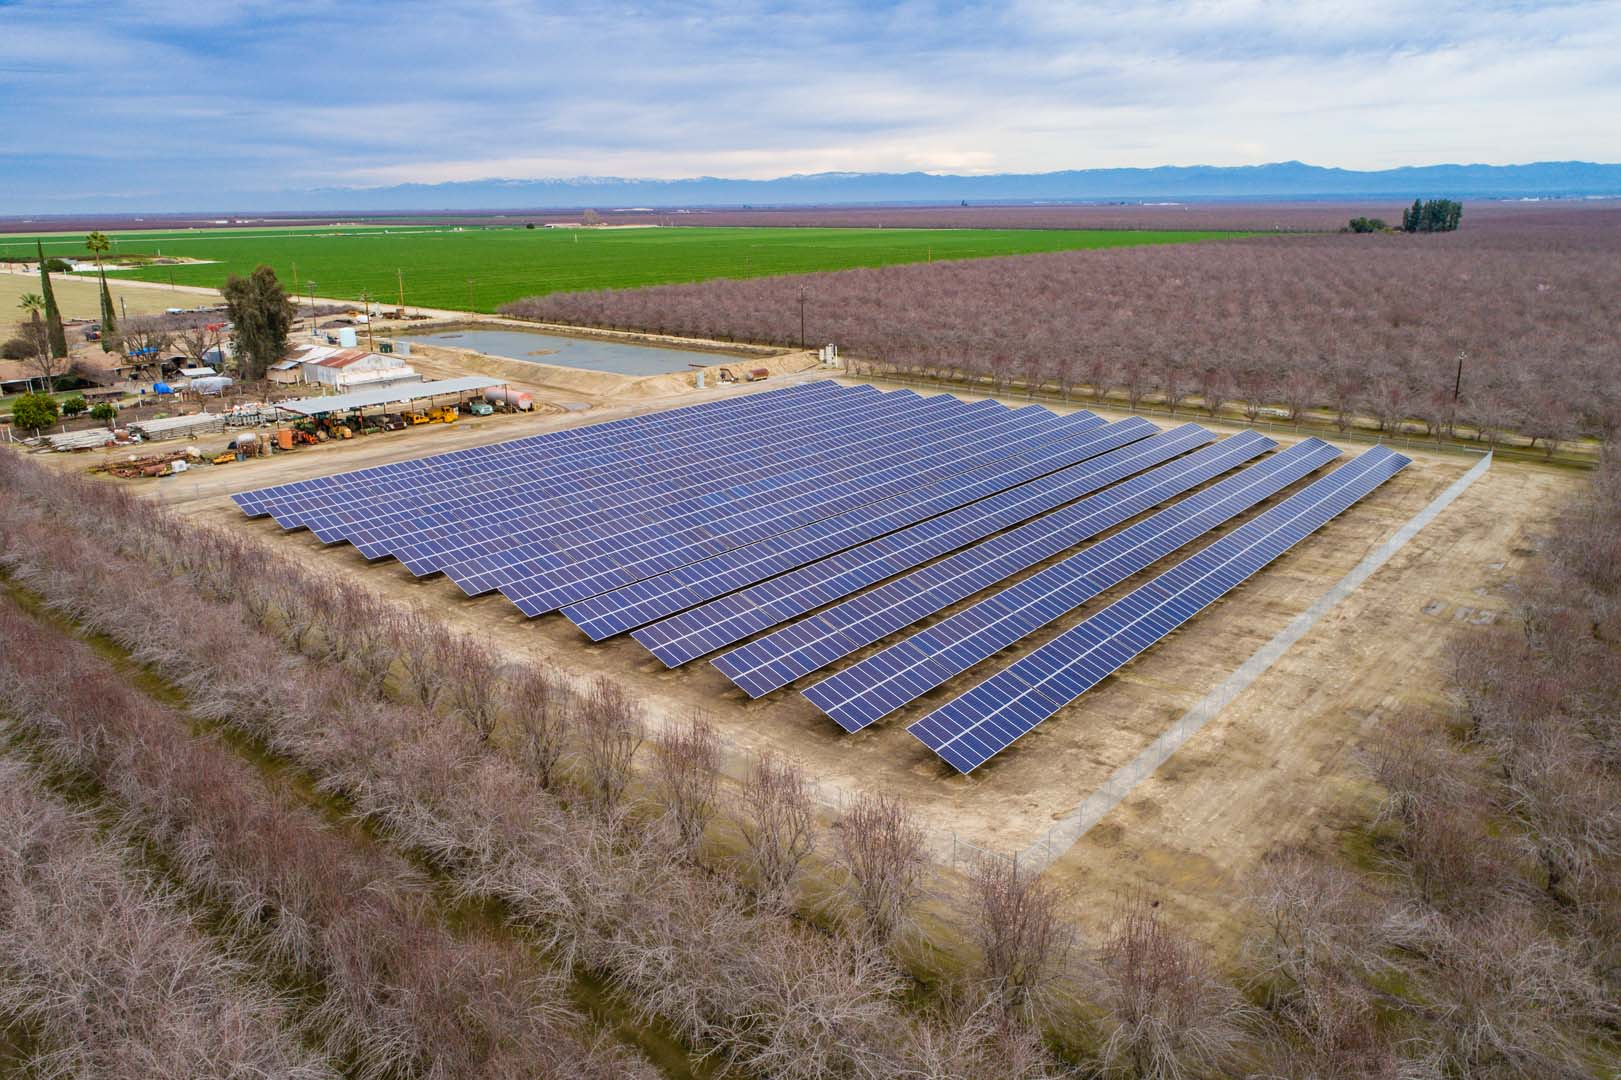 669 kW GeoPro Ground Mount Fixed-Tilt Solar System in Wasco, CA out of Kern County. Source: Business Wire